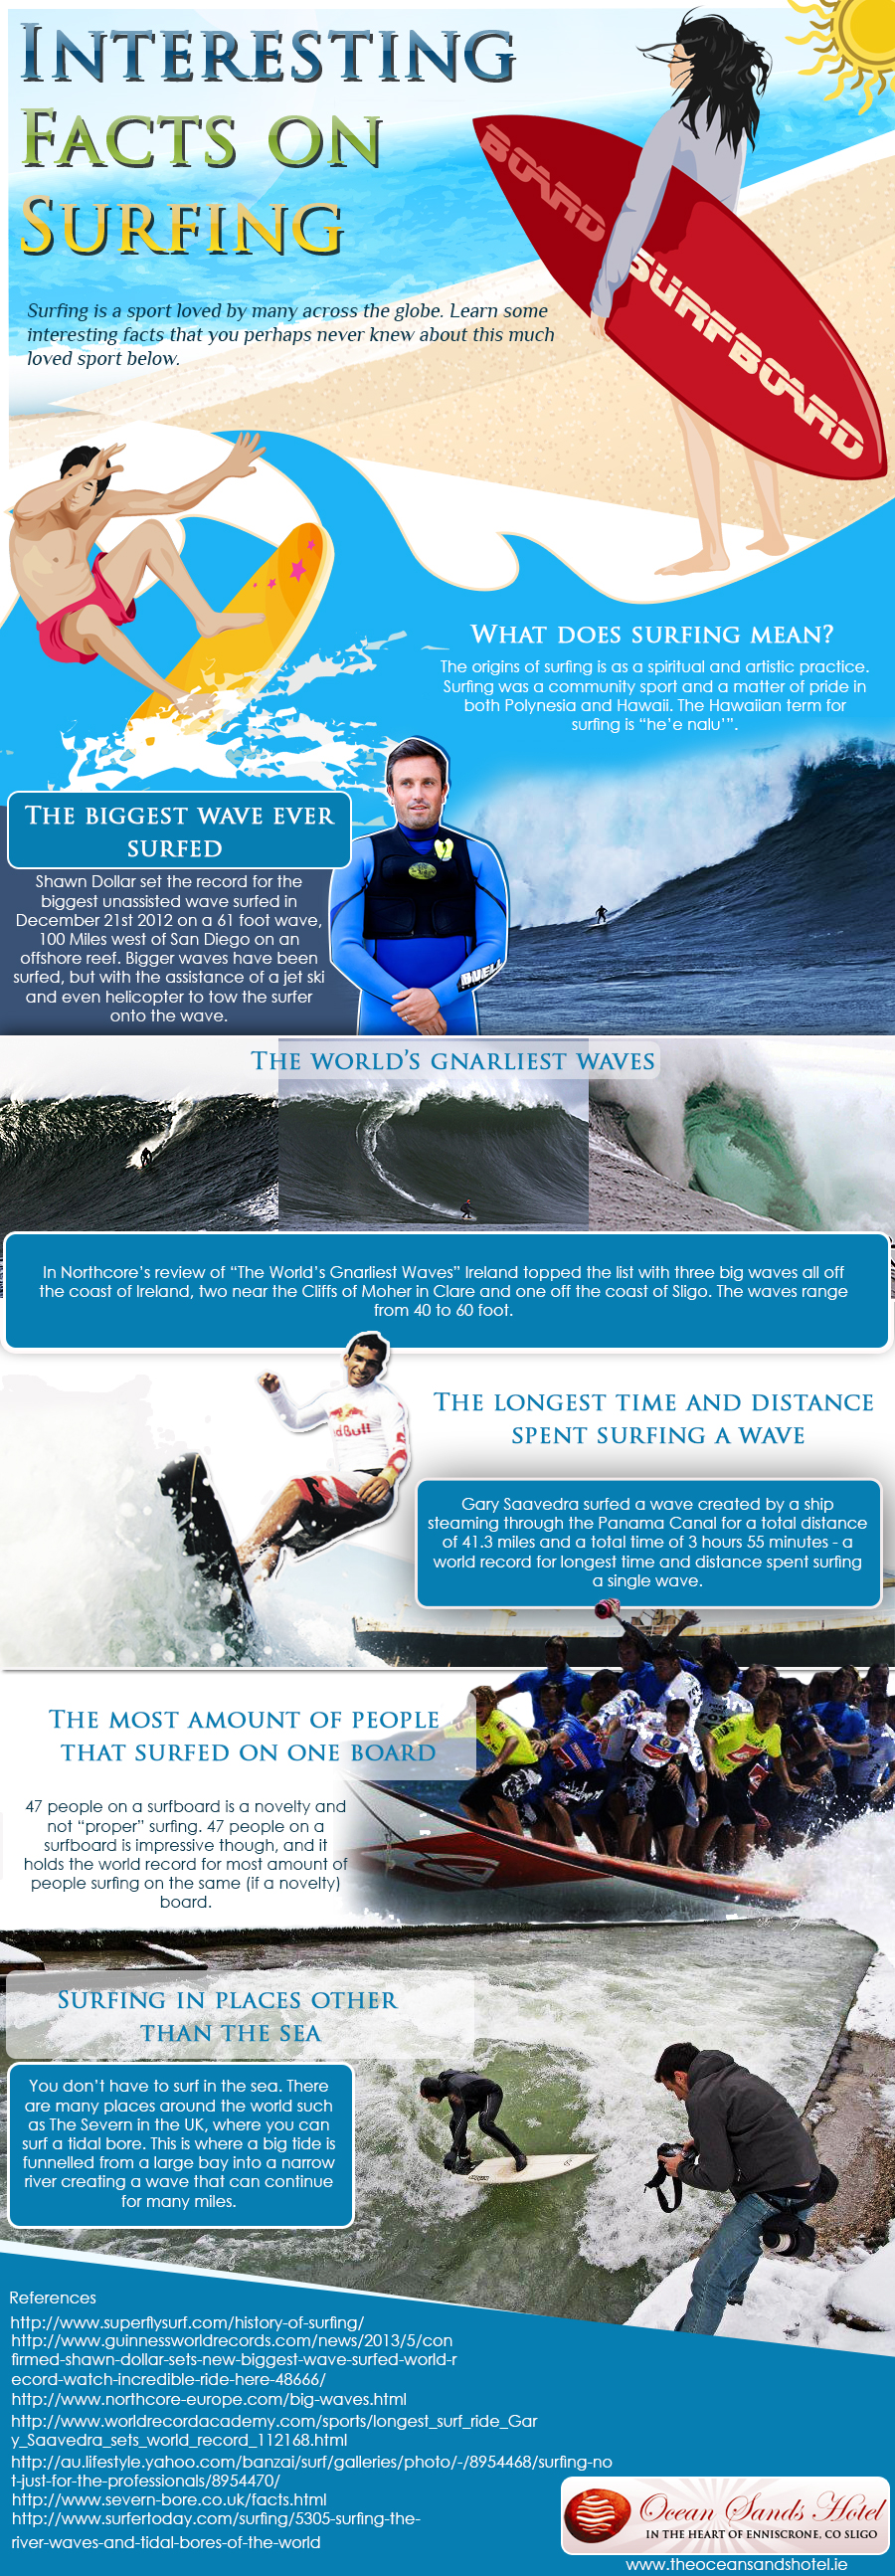 Facts about Surfing